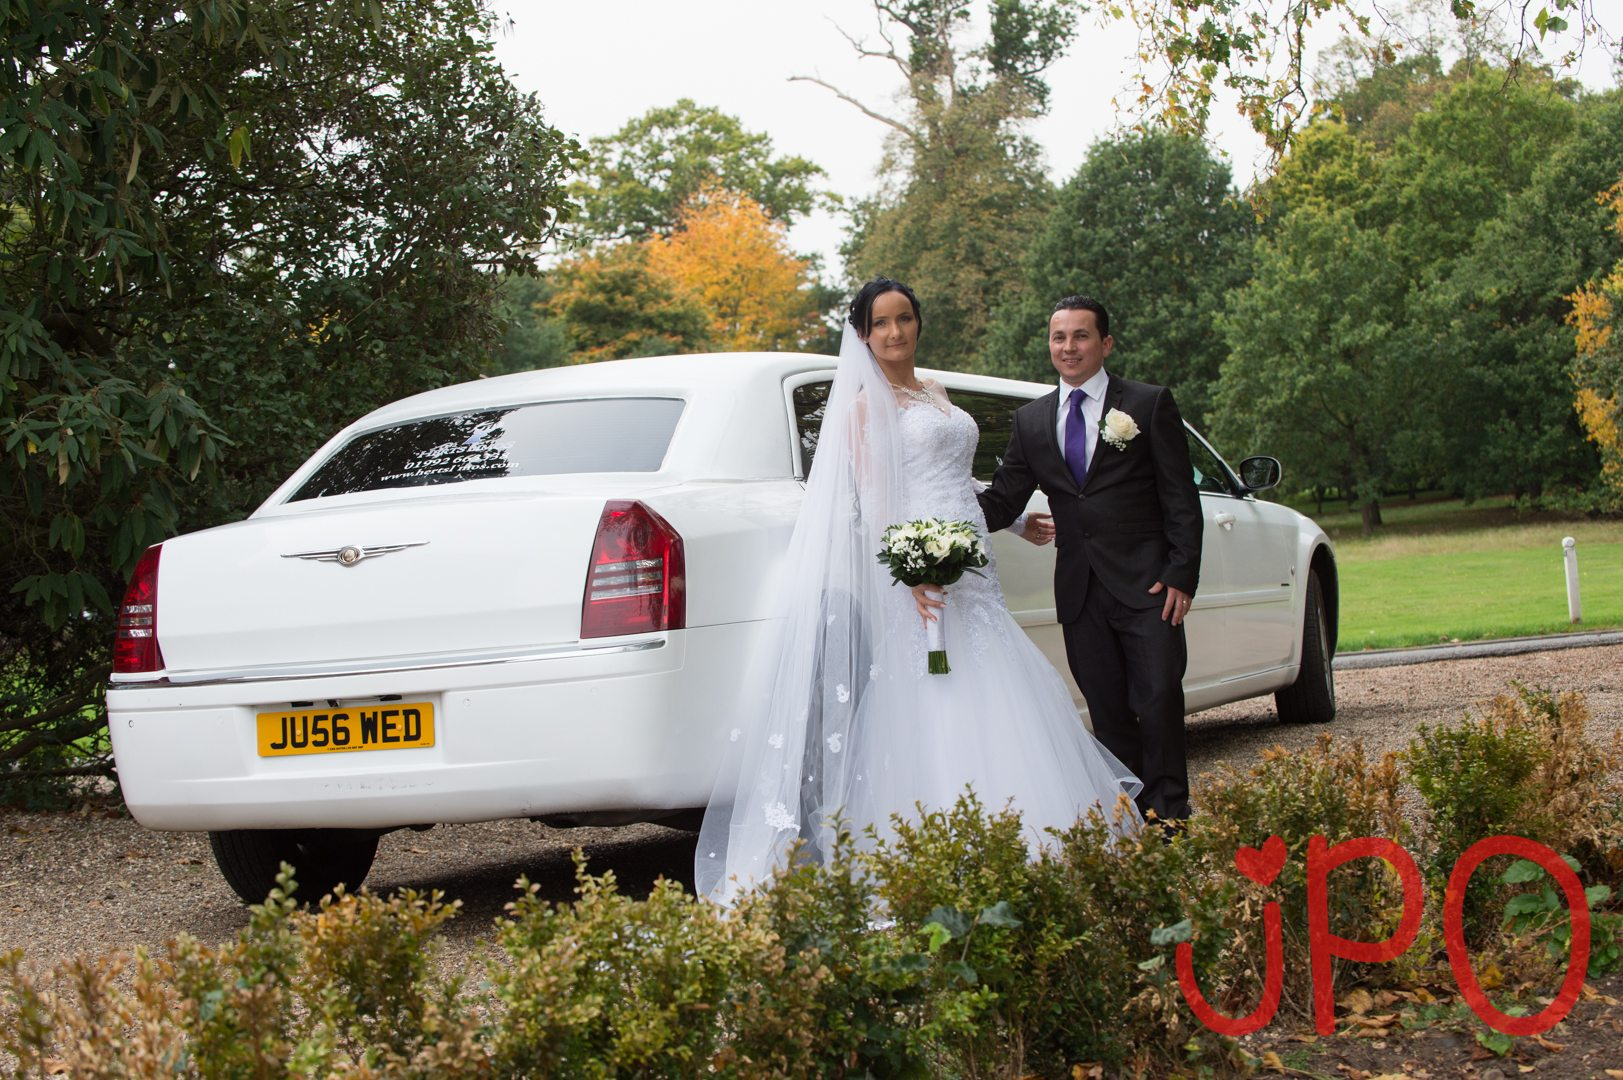 Angela and Francescos wedding at Bishops College Cheshunt